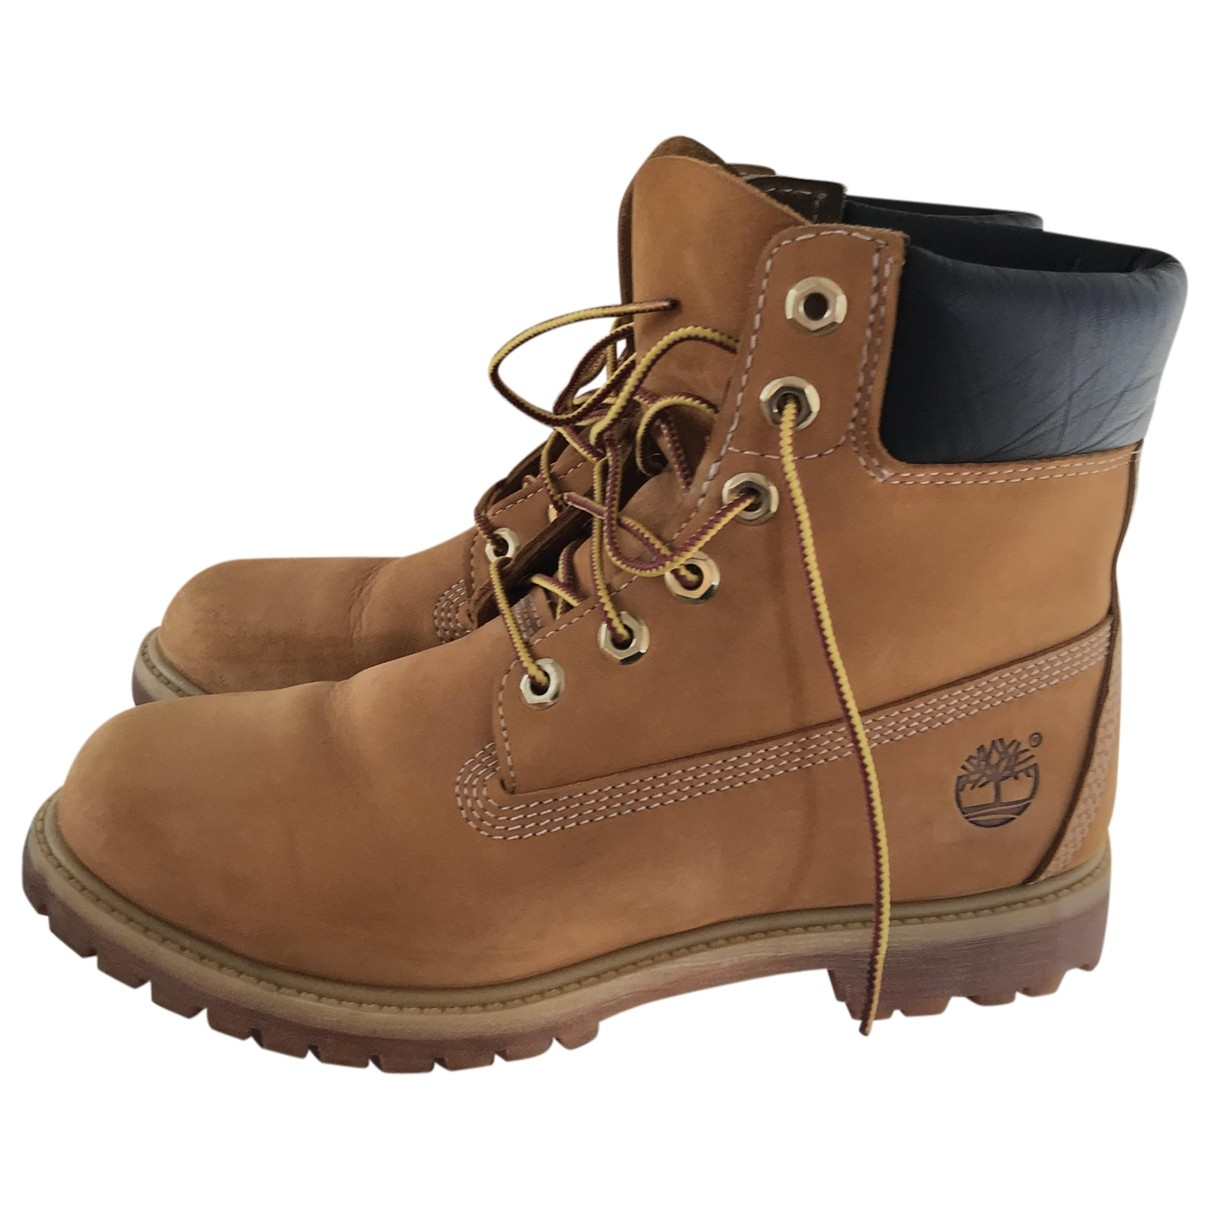 Timberland \N Beige Leather Boots for Women 8.5 US